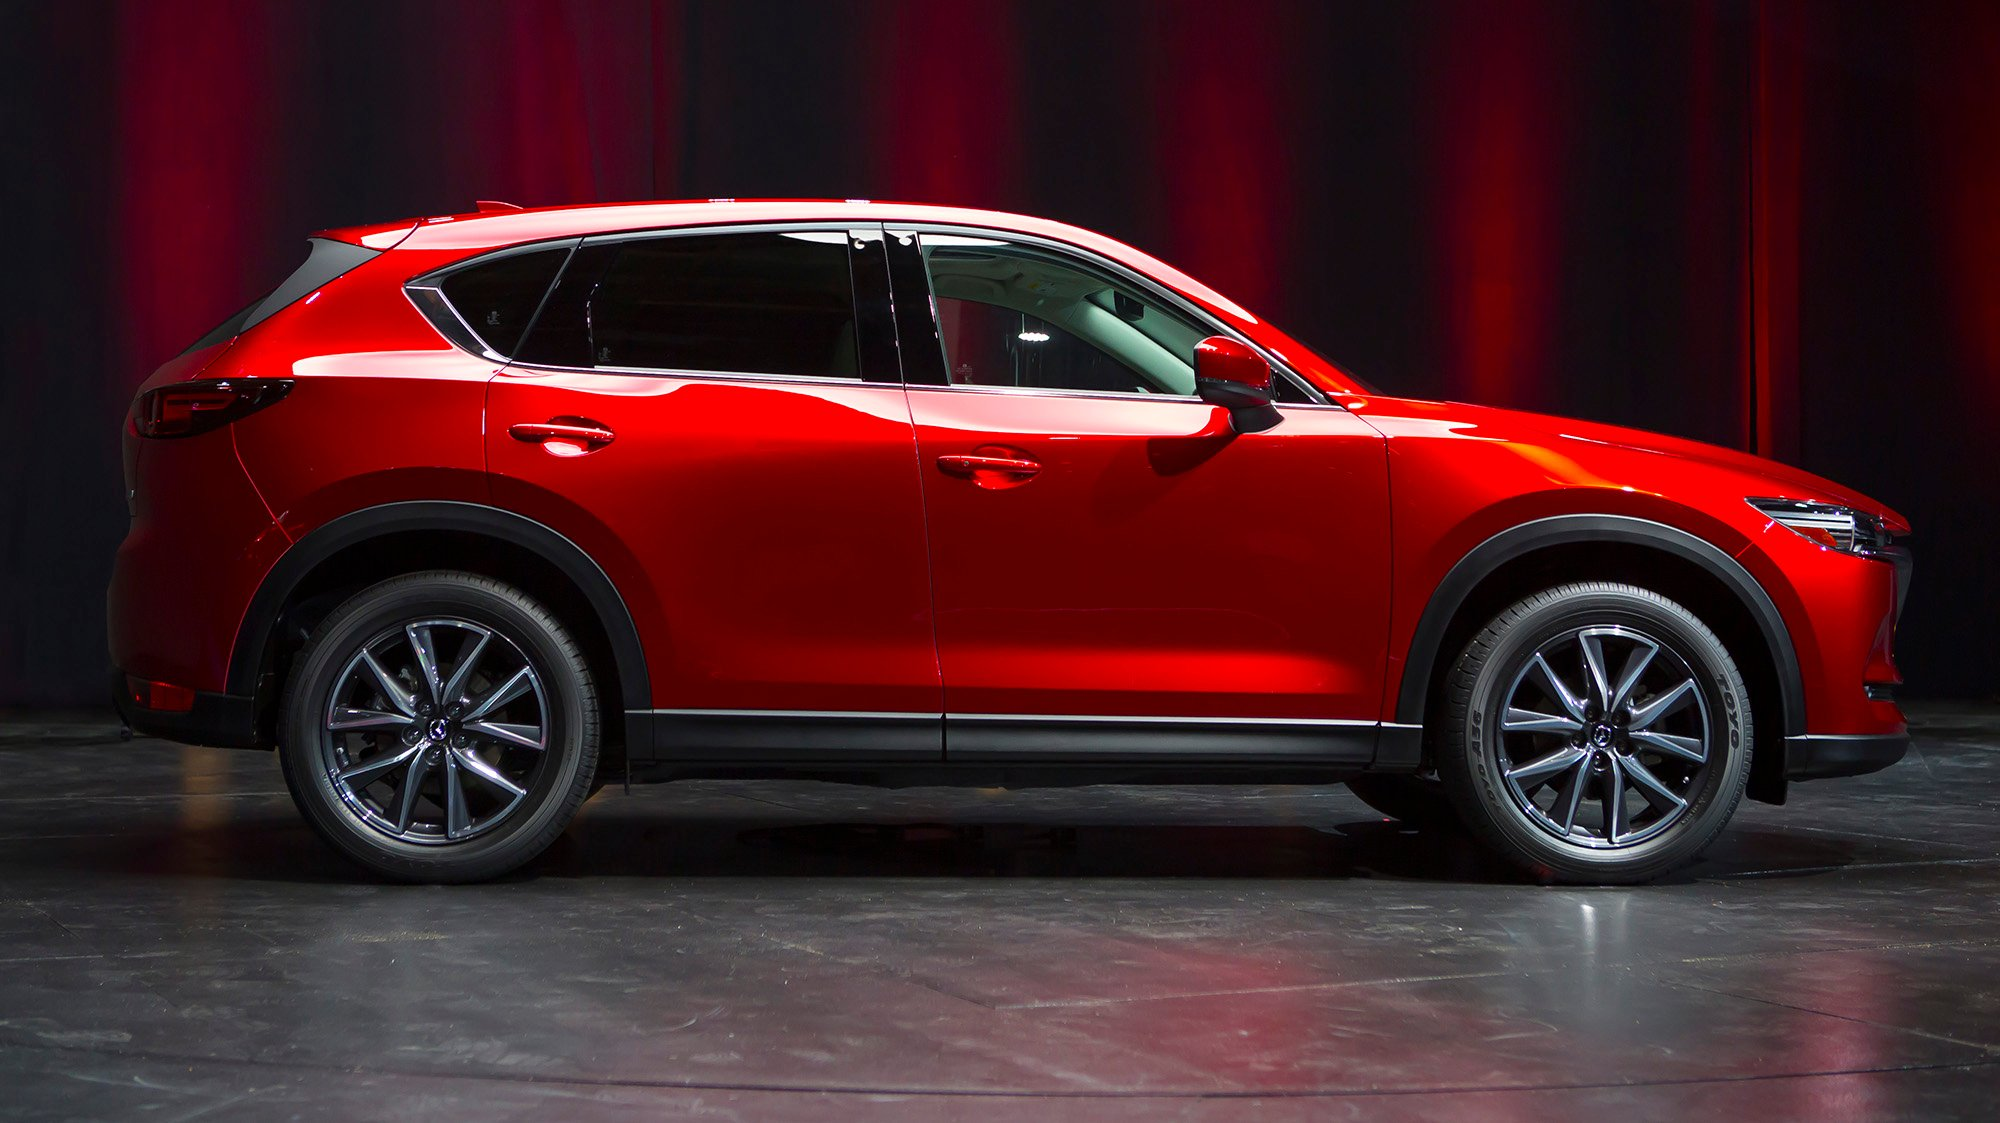 2017 mazda cx 5 unveiled in la photos caradvice. Black Bedroom Furniture Sets. Home Design Ideas